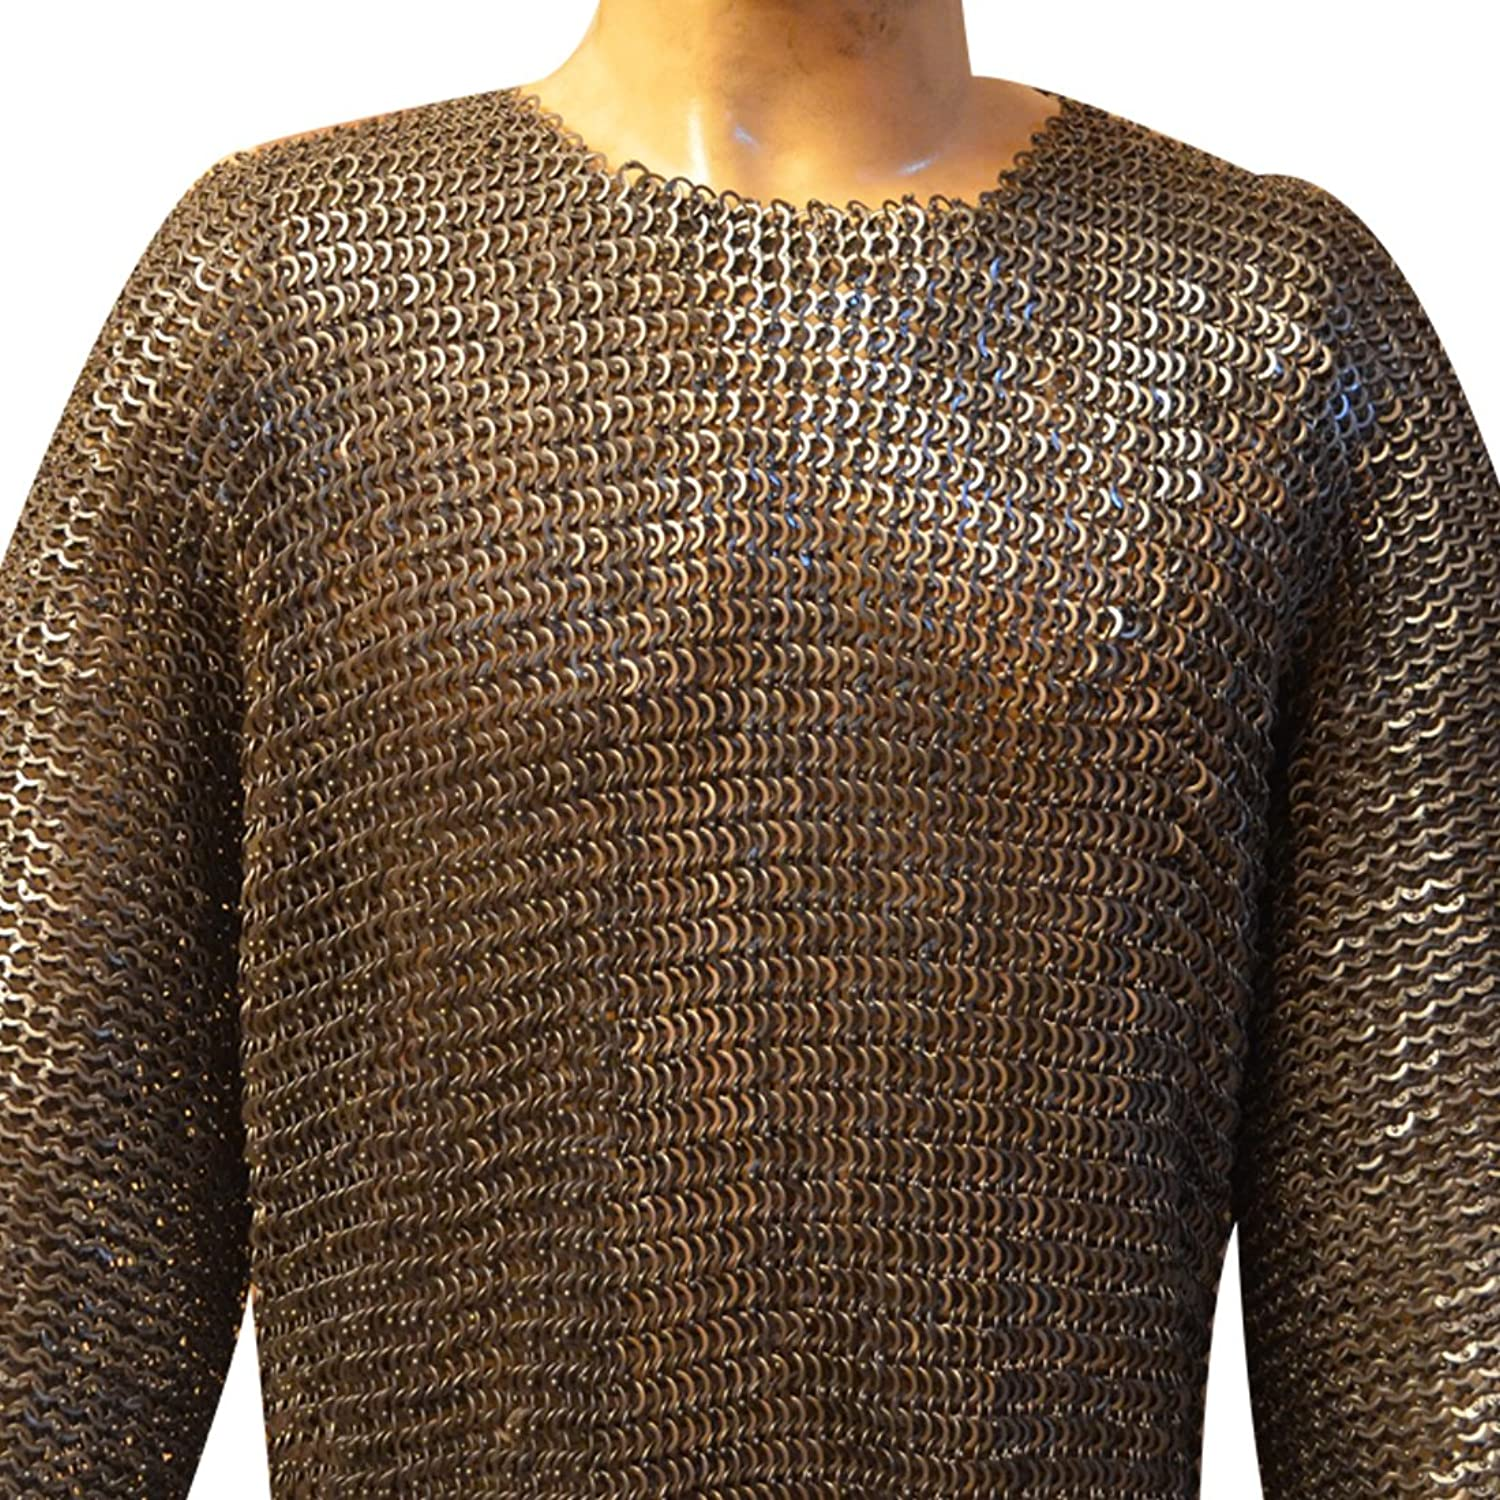 Chain Maille Hauberk 8 Mm Flat Solid Riveted Chest 40Medium Oiled